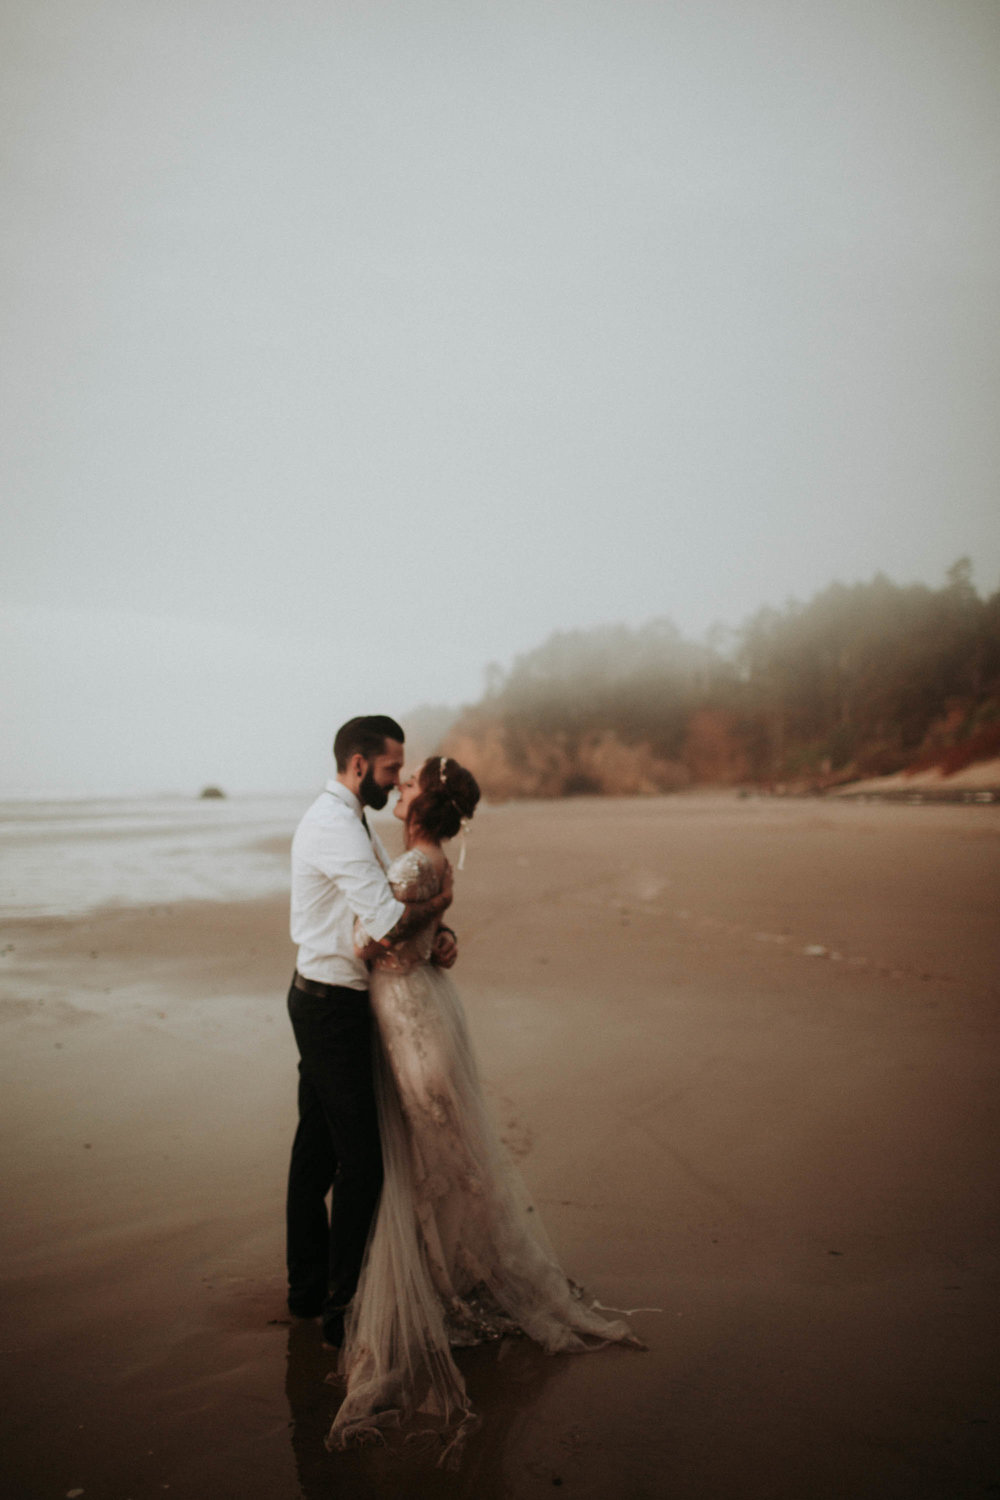 canonbeach_elopment_weddingphotographer-154.jpg